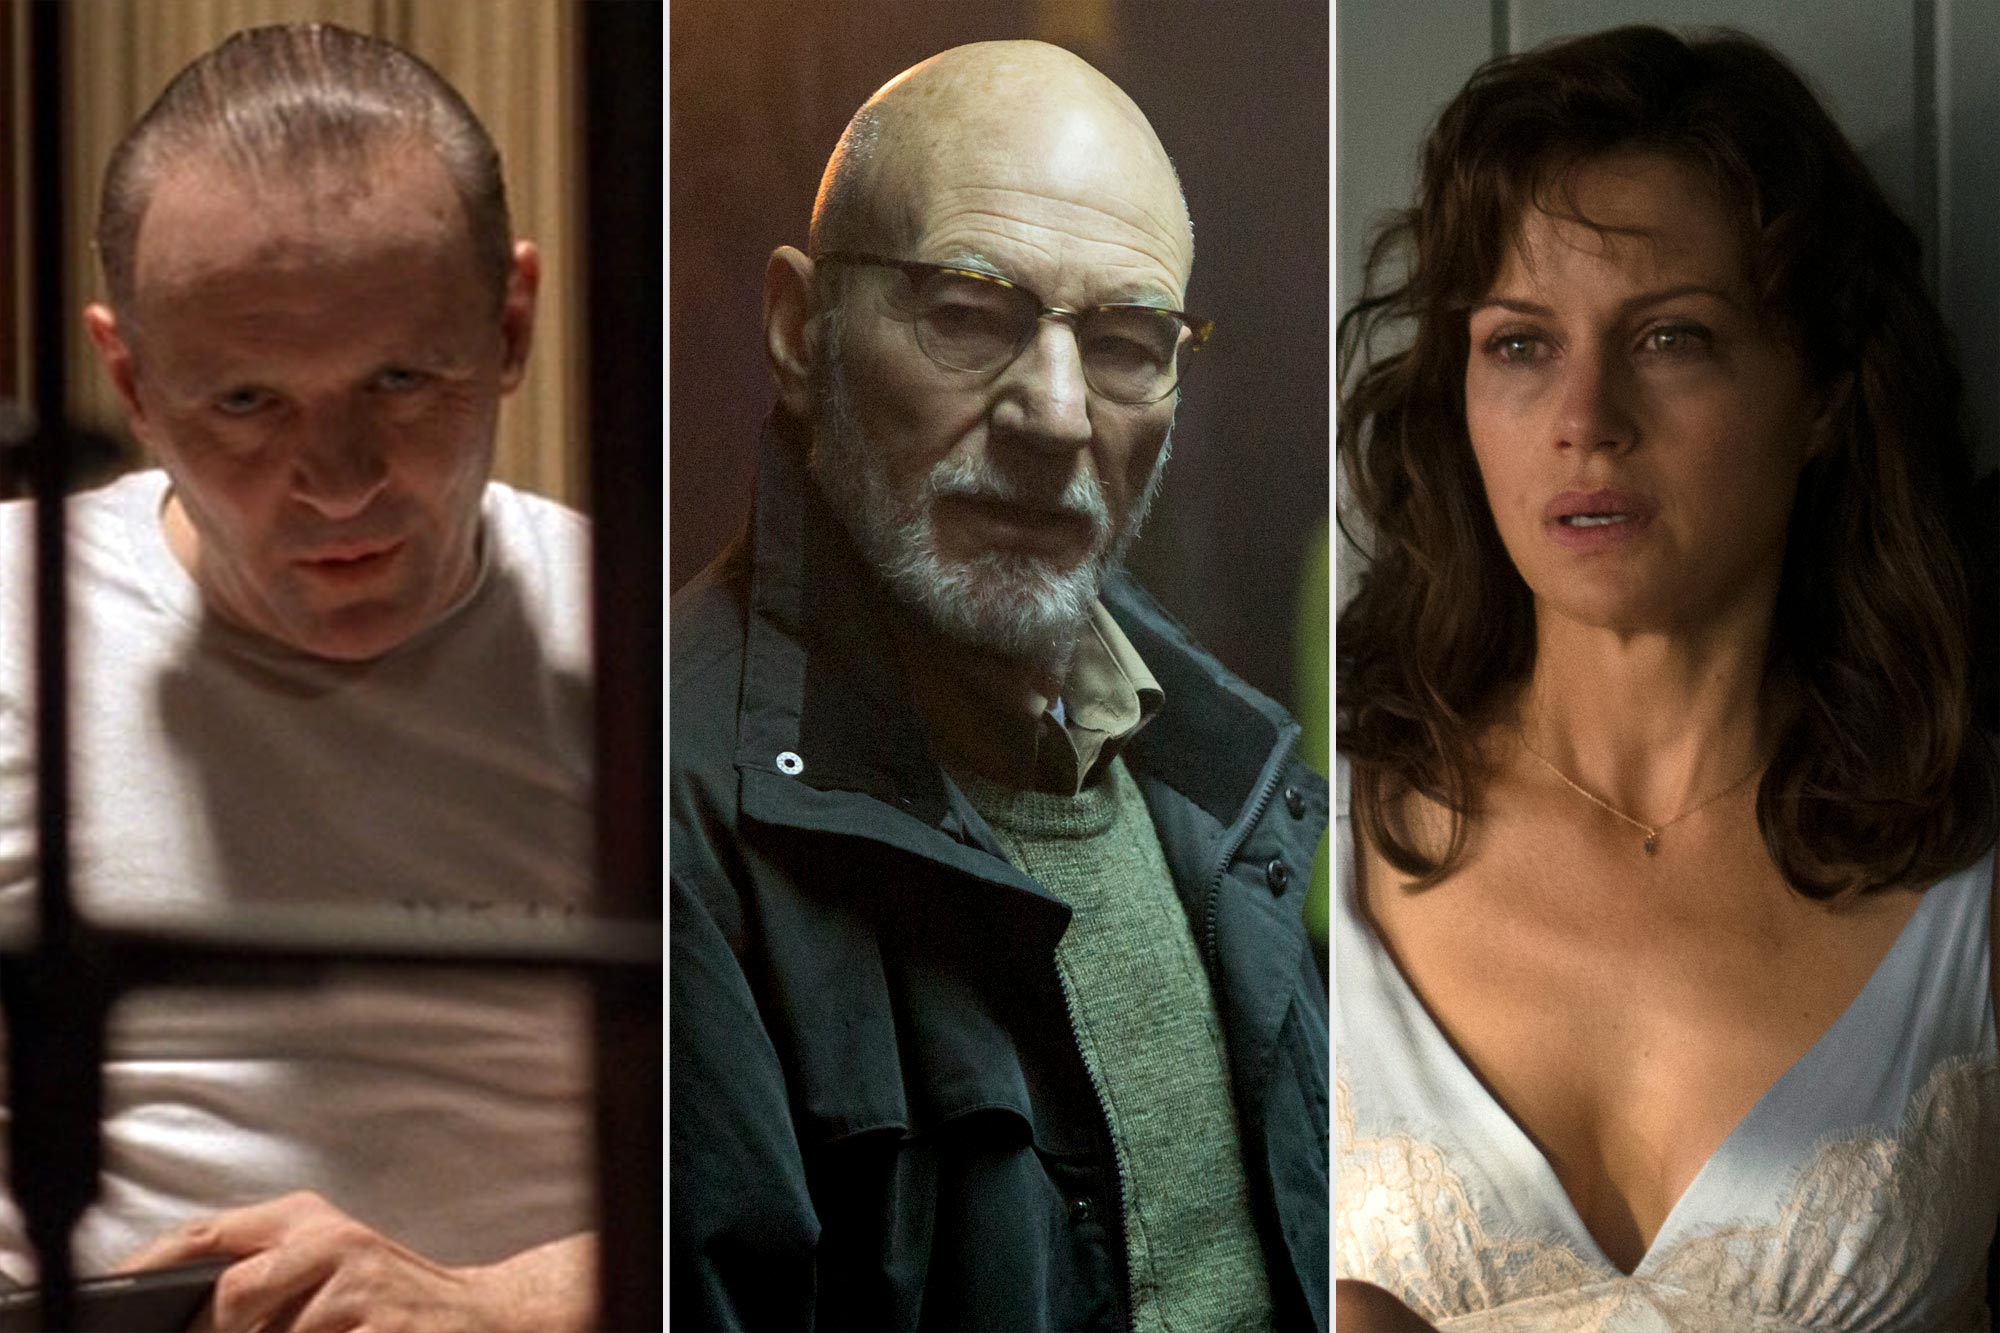 Silence of the Lambs, Green Room, and Gerald's Game